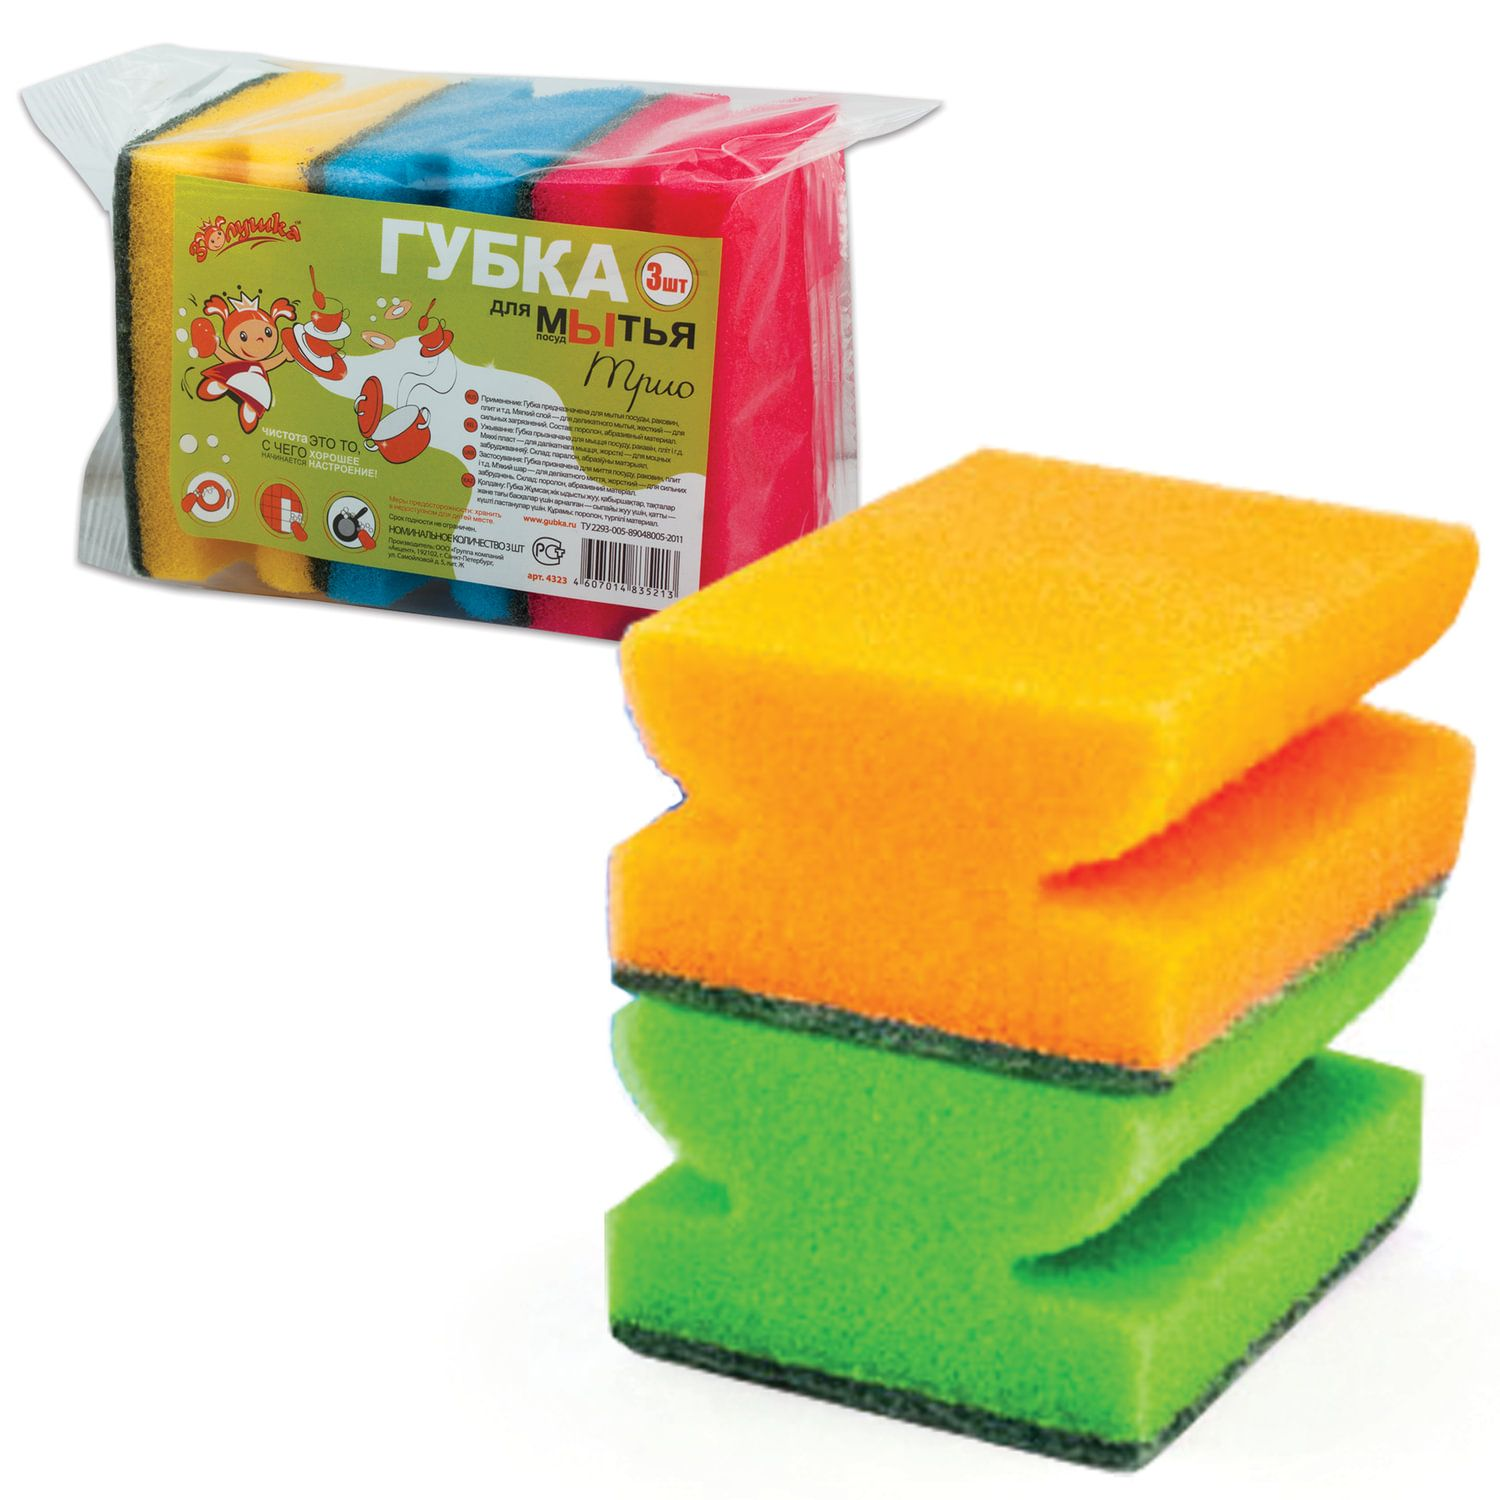 Cinderella / Universal household sponges, set of 3 pcs., Cleaning layer, profiled, 4x9x7 cm